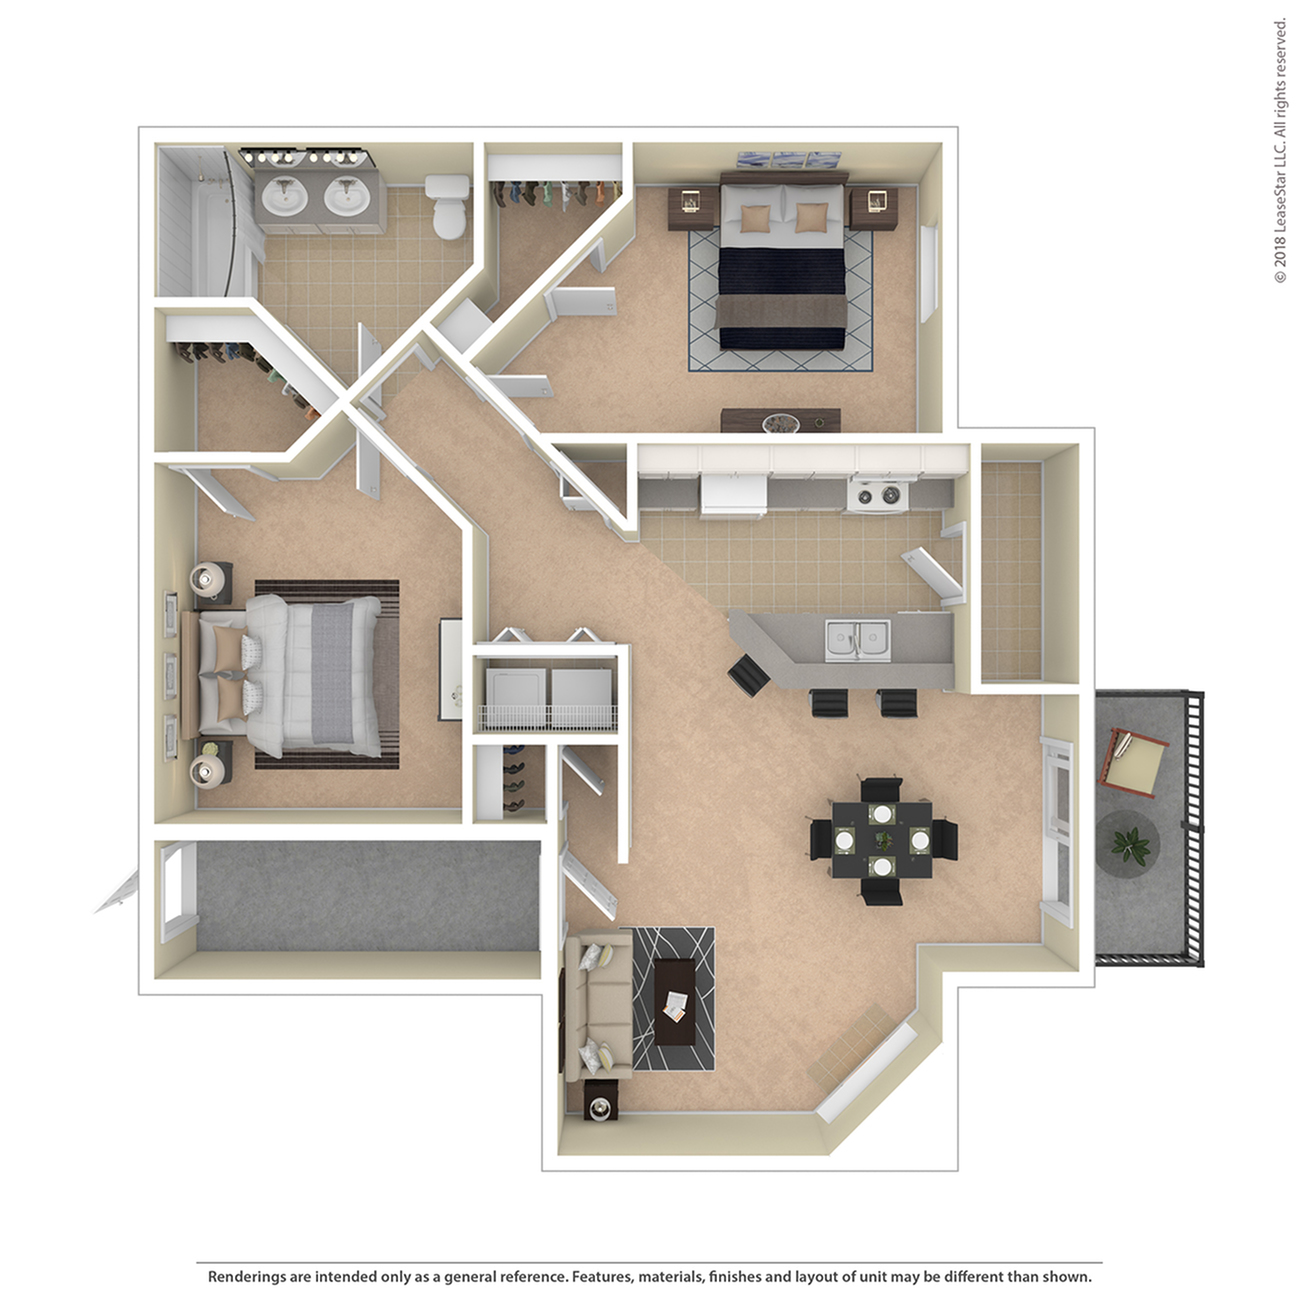 2 Bedroom Floor Plan | Apartments For Rent In Colorado Springs | Willows at Printers Park